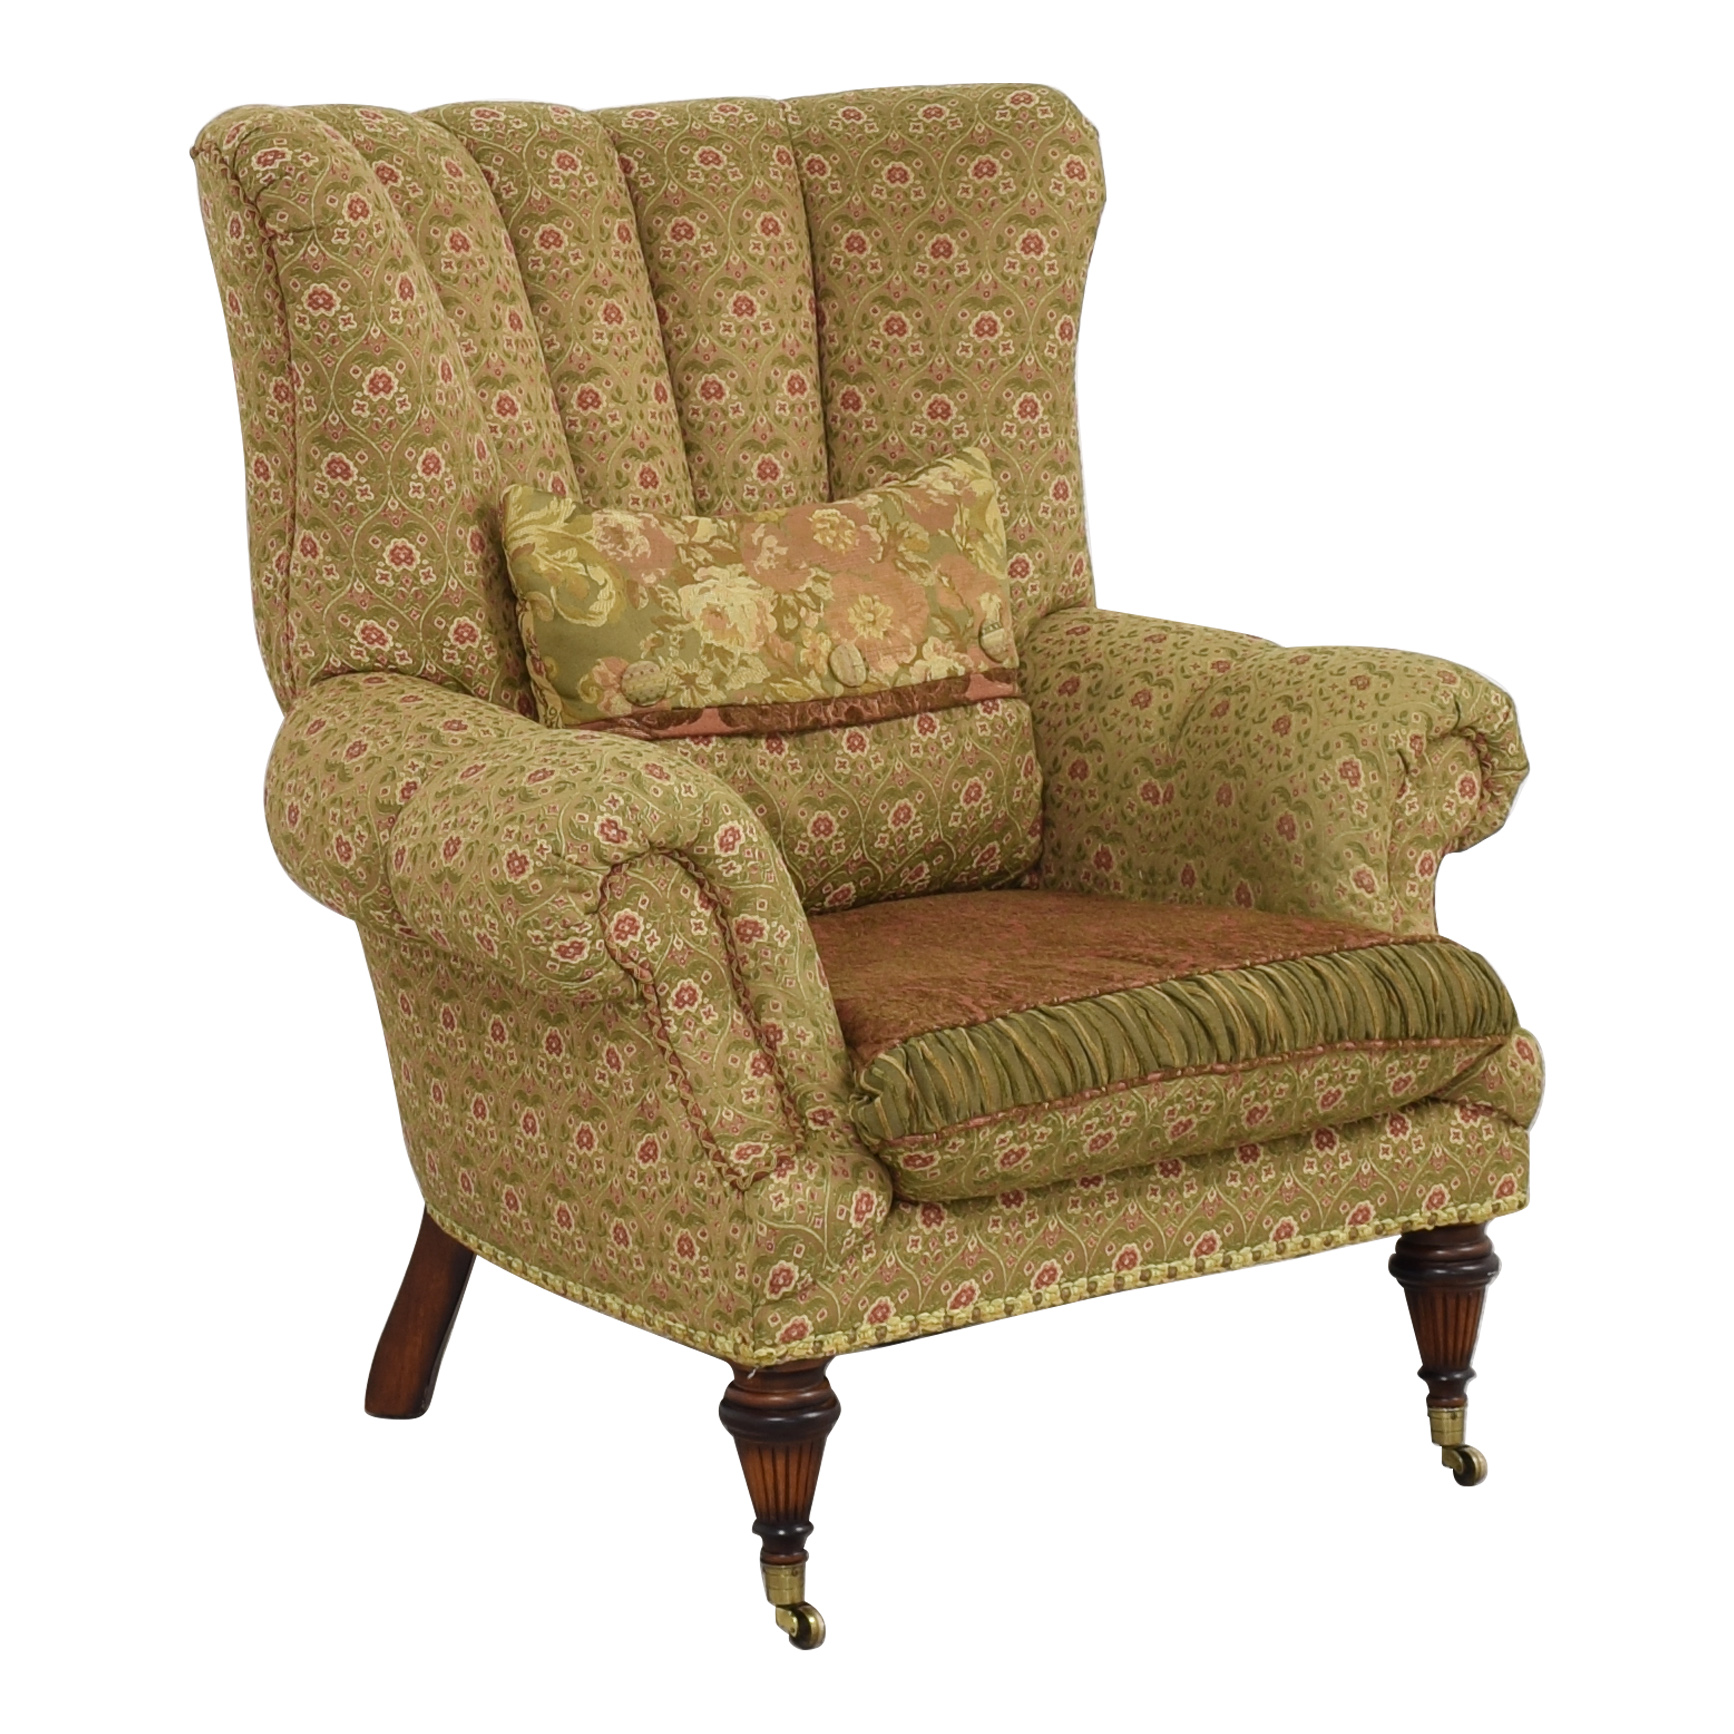 buy Key City Jeff Zimmerman Wingback Lounge Chair Key City Furniture Chairs